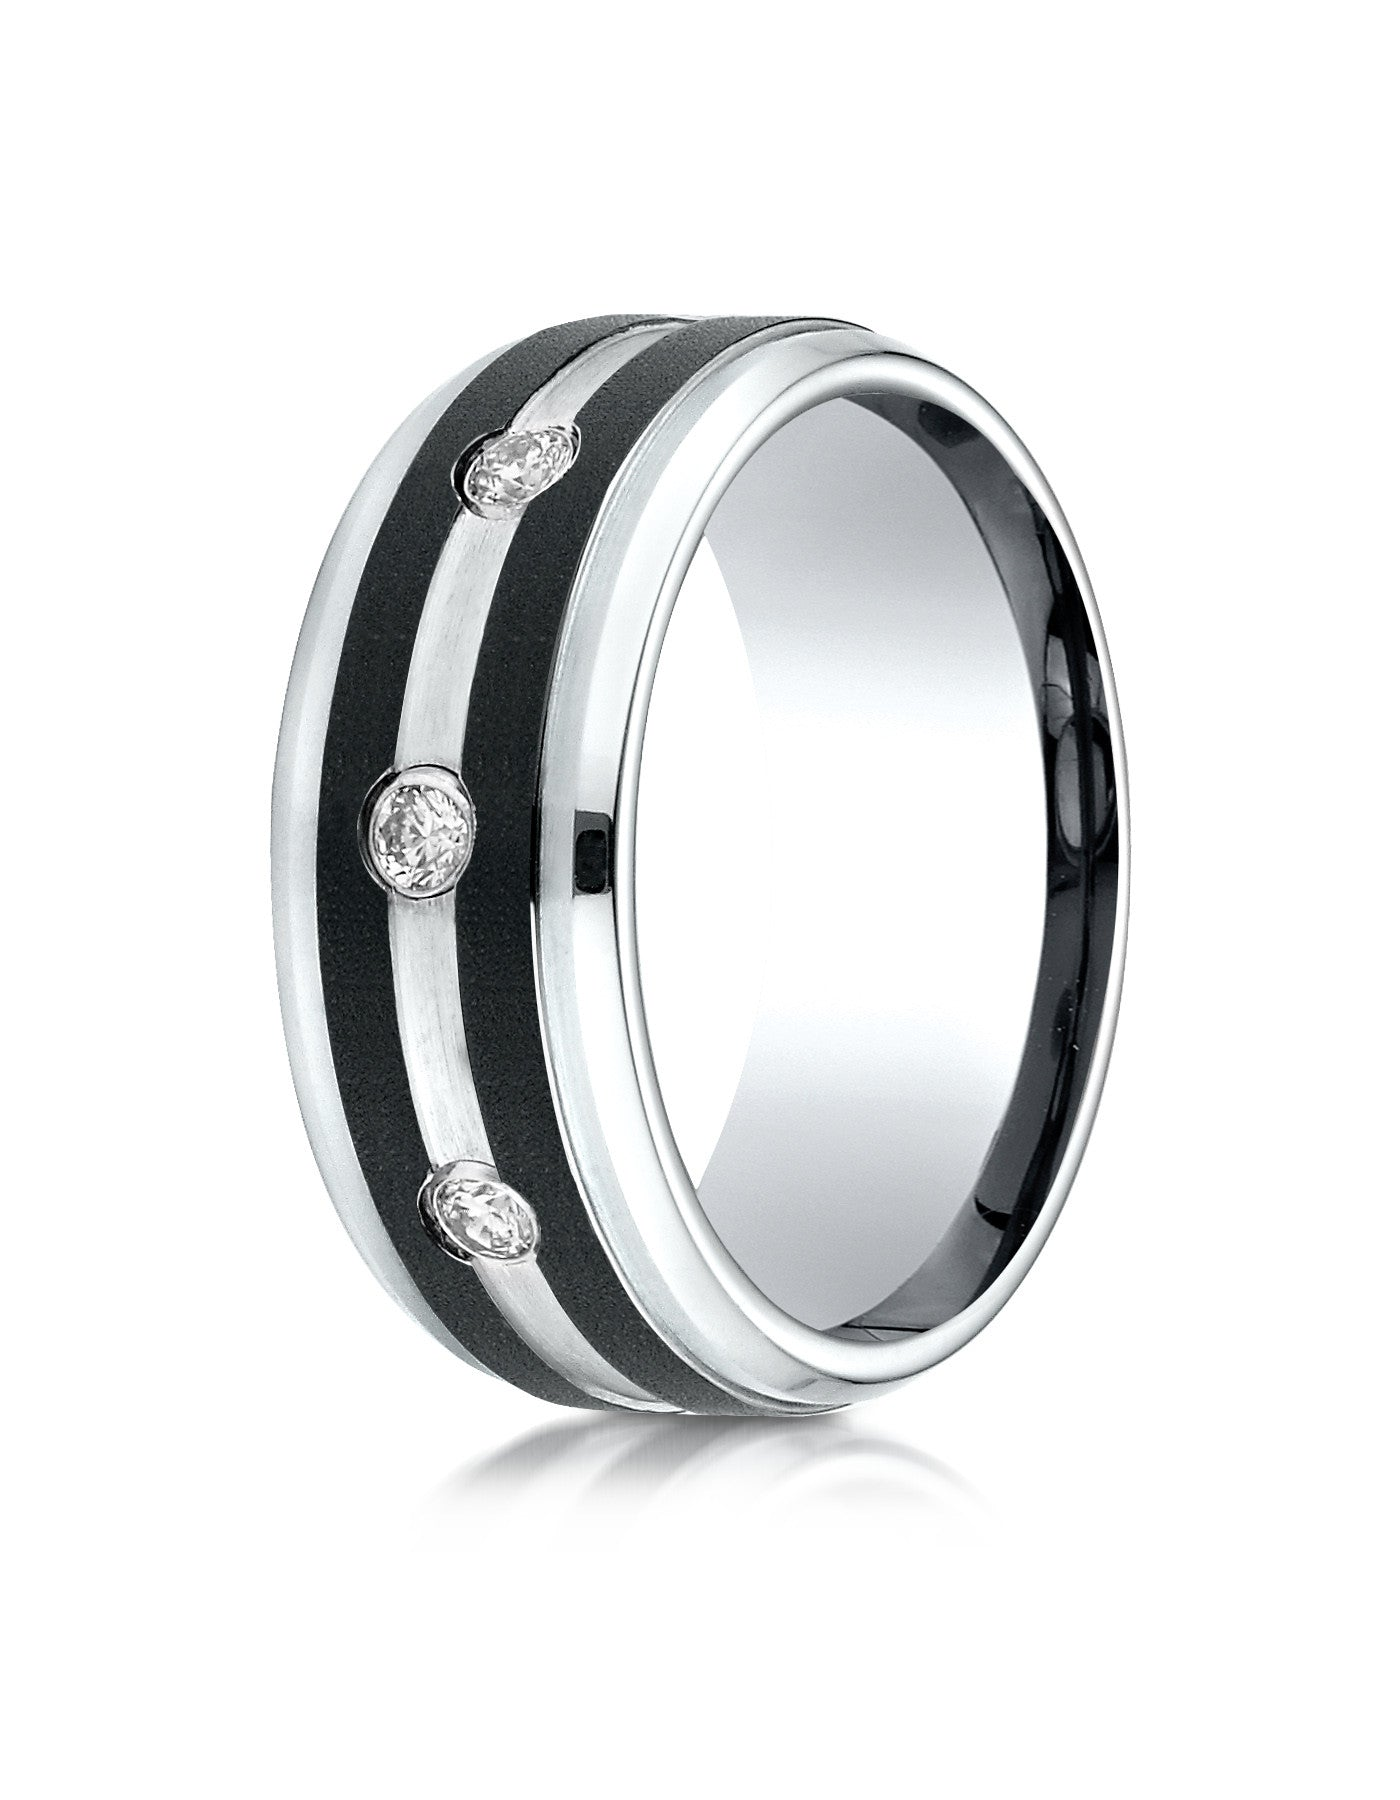 thrash hammer benchmark cobalt wedding rings mens hammered finish black ring band